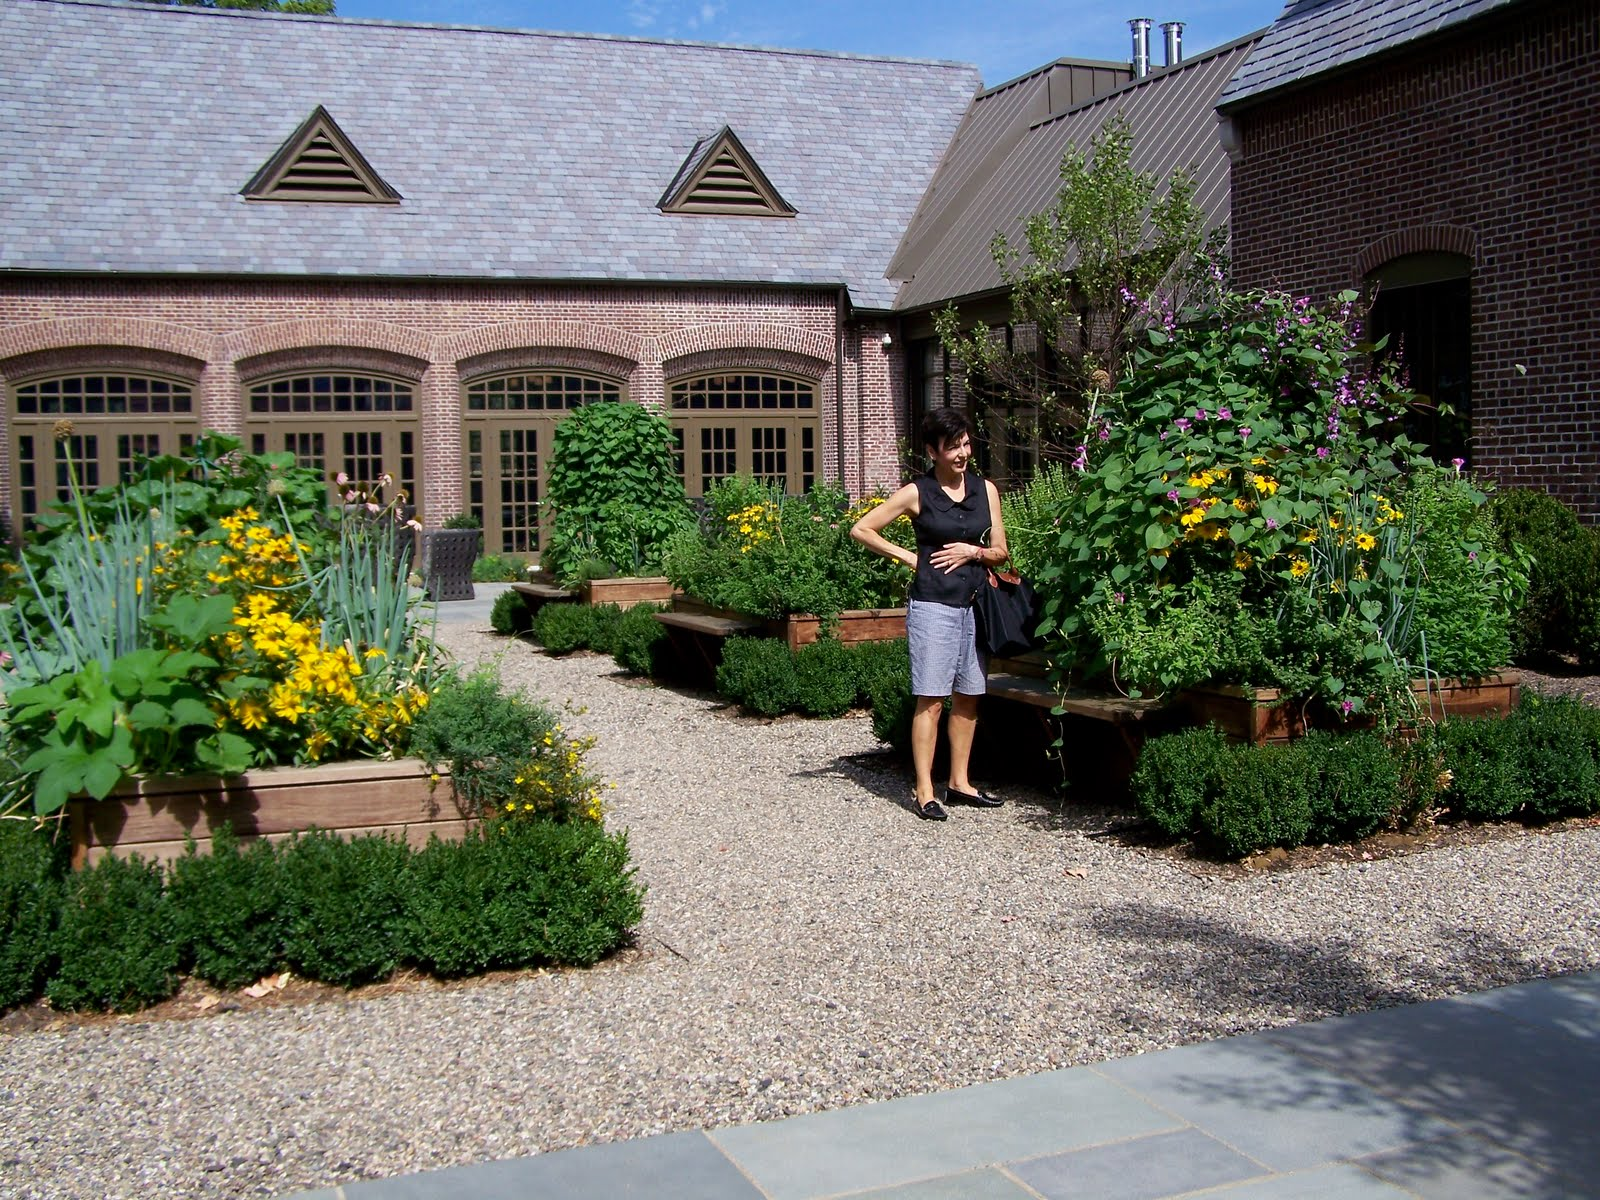 Garden State On A Plate: A Visit to the Viking Cooking School at ...